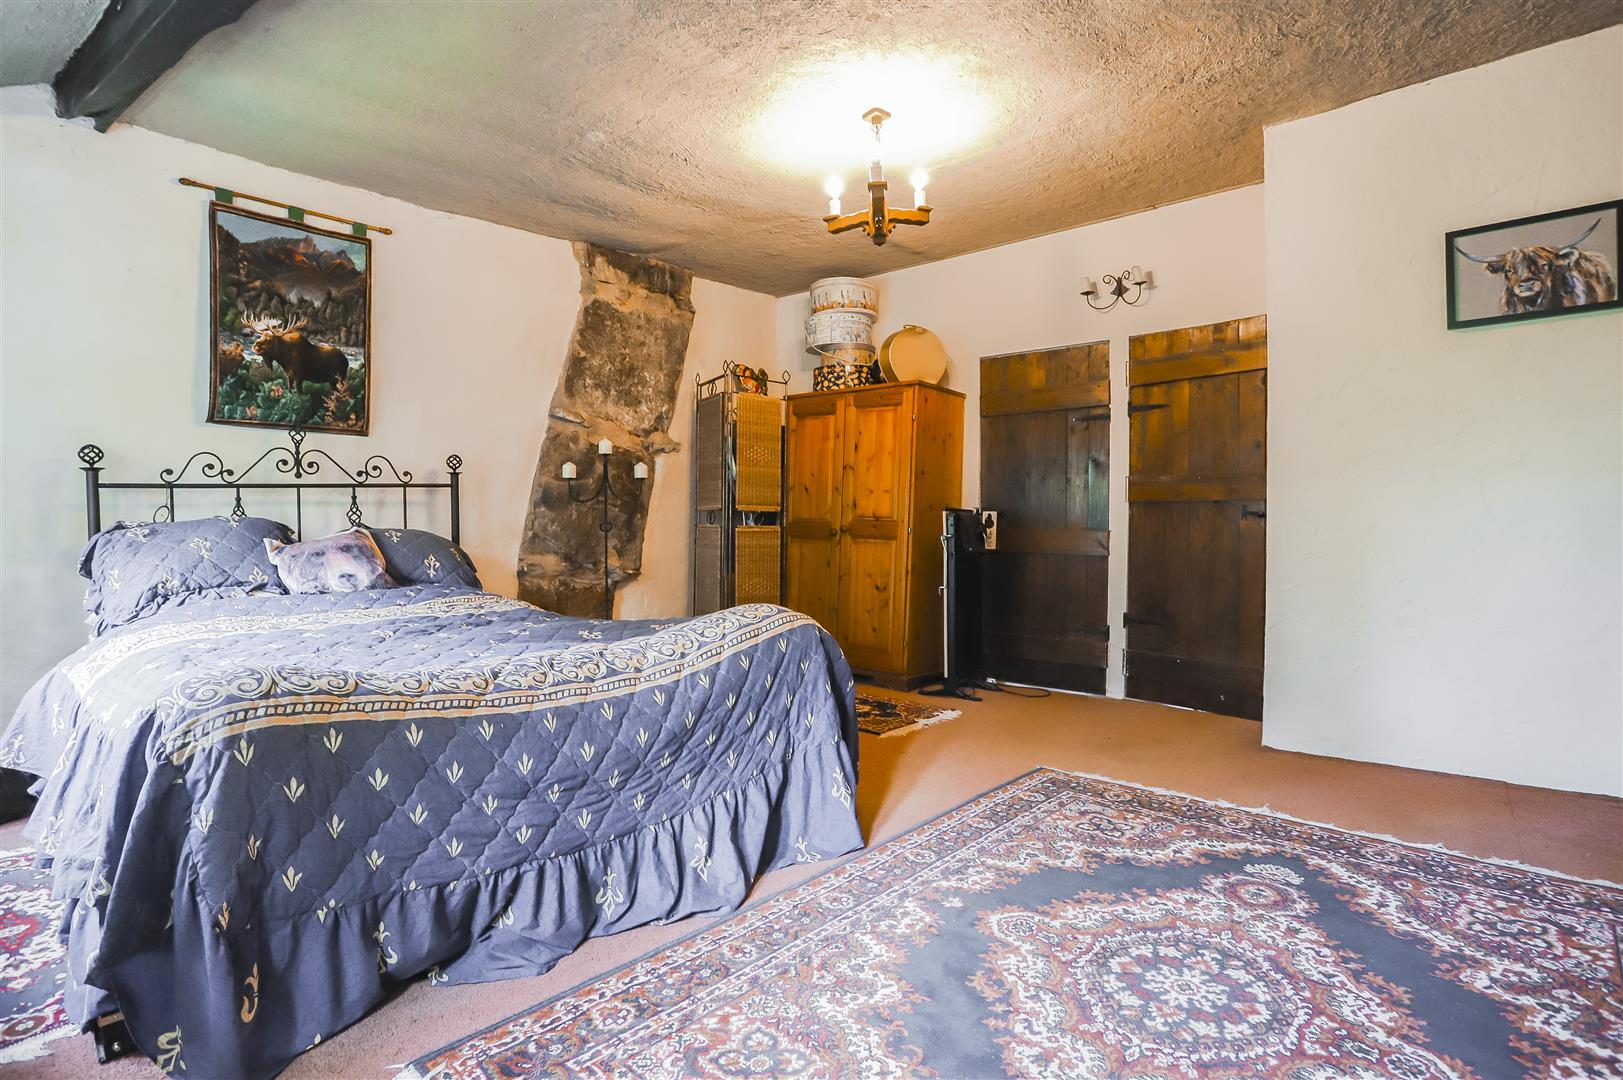 3 Bedroom House For Sale - Image 8